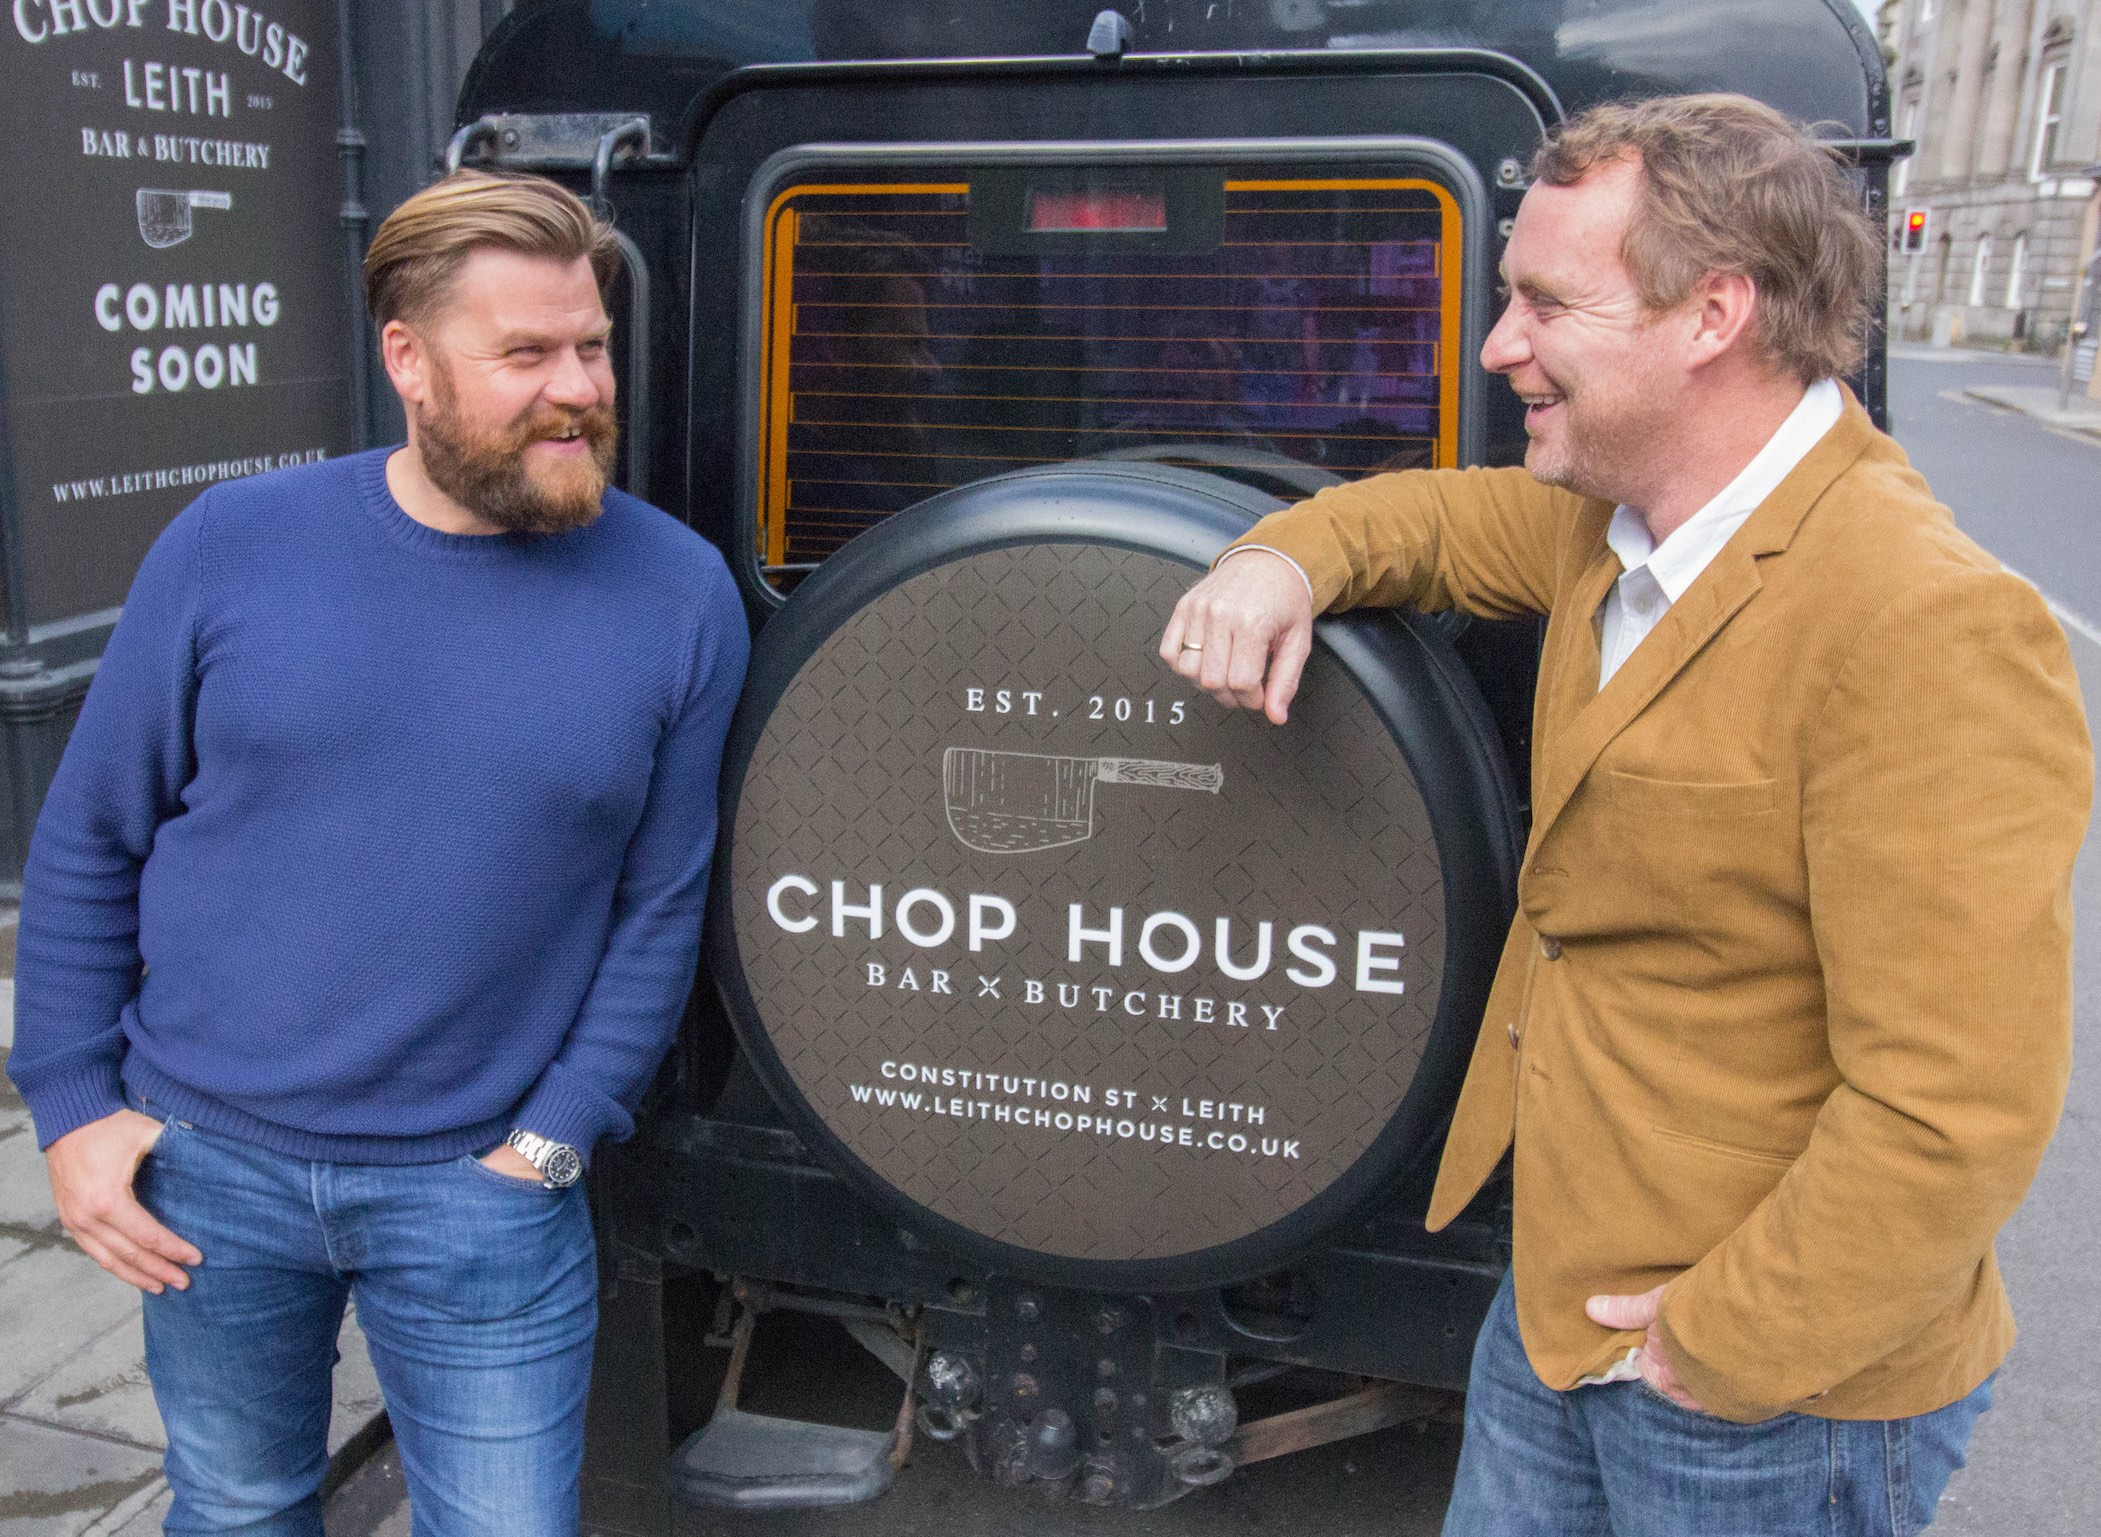 Leith Chop House Mark Fraser and Michael Spink copy.jpg